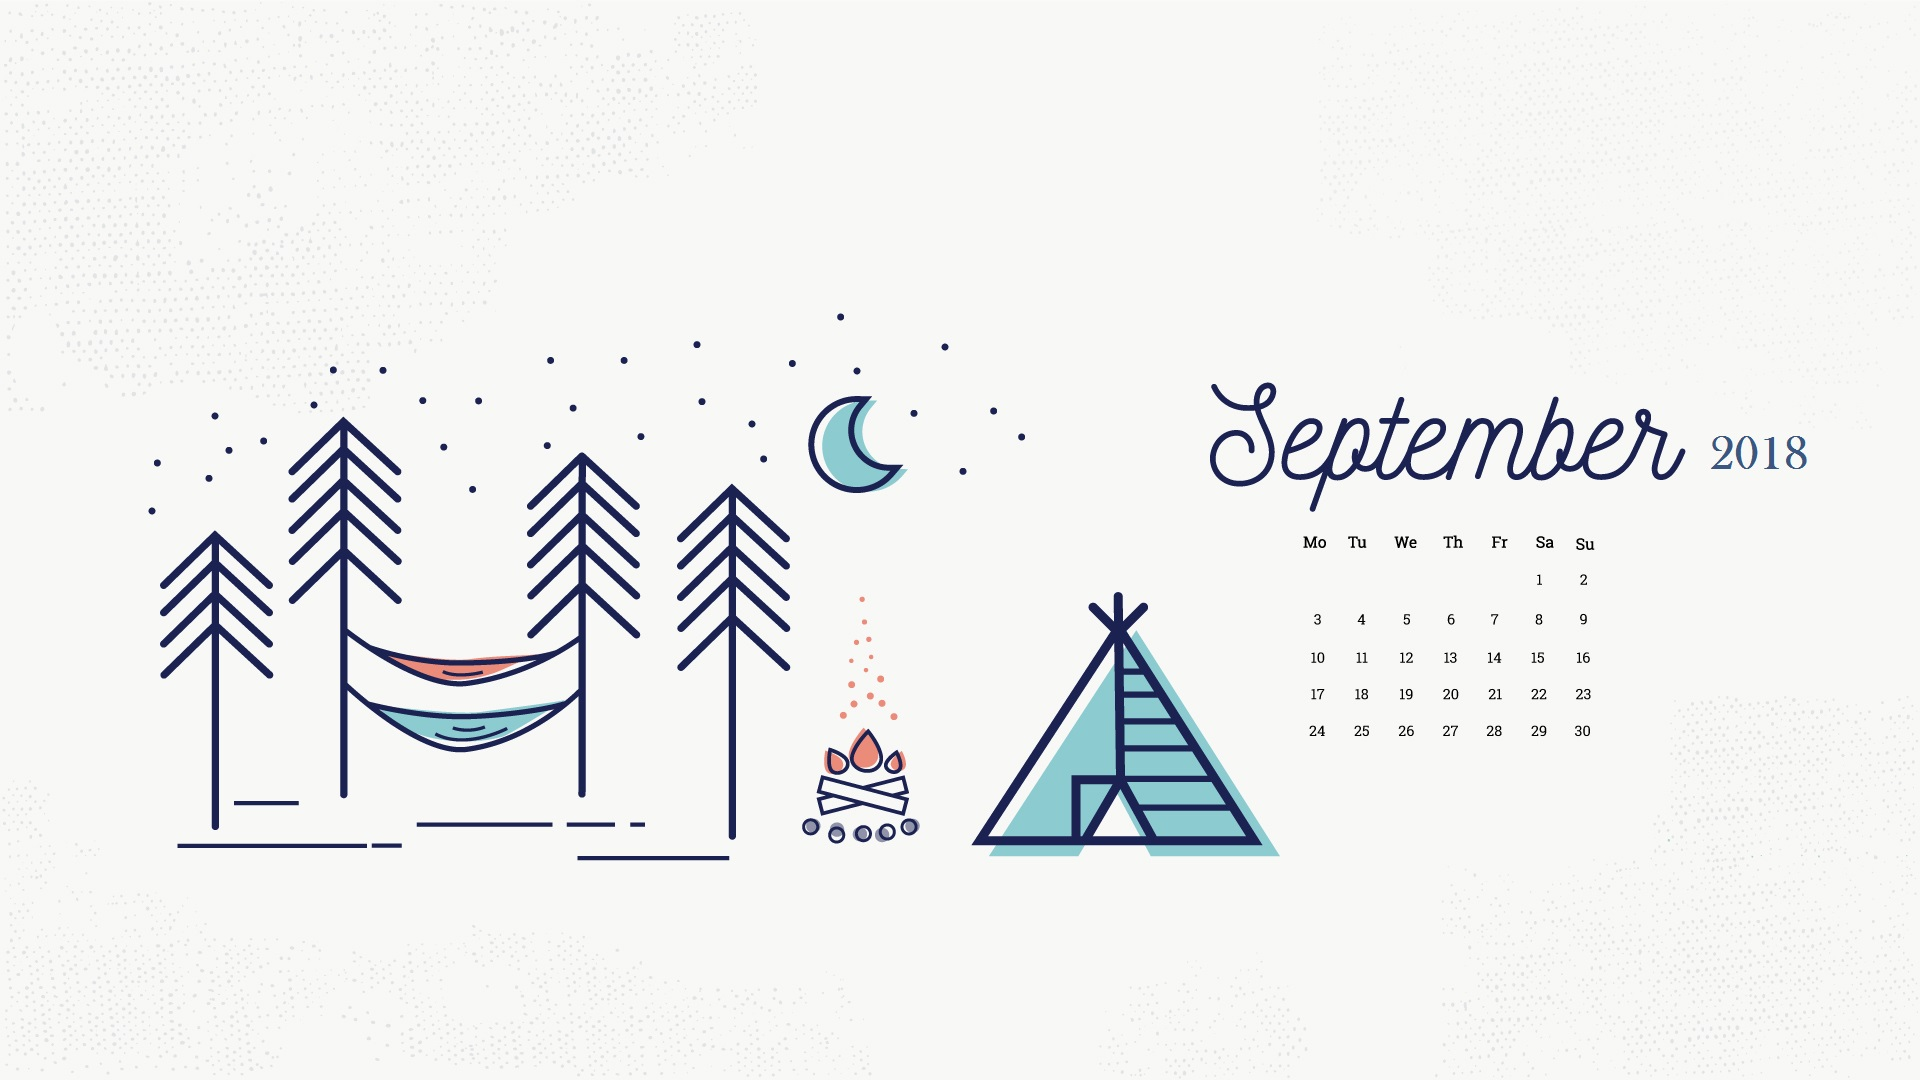 September 2018 Desktop Calendar